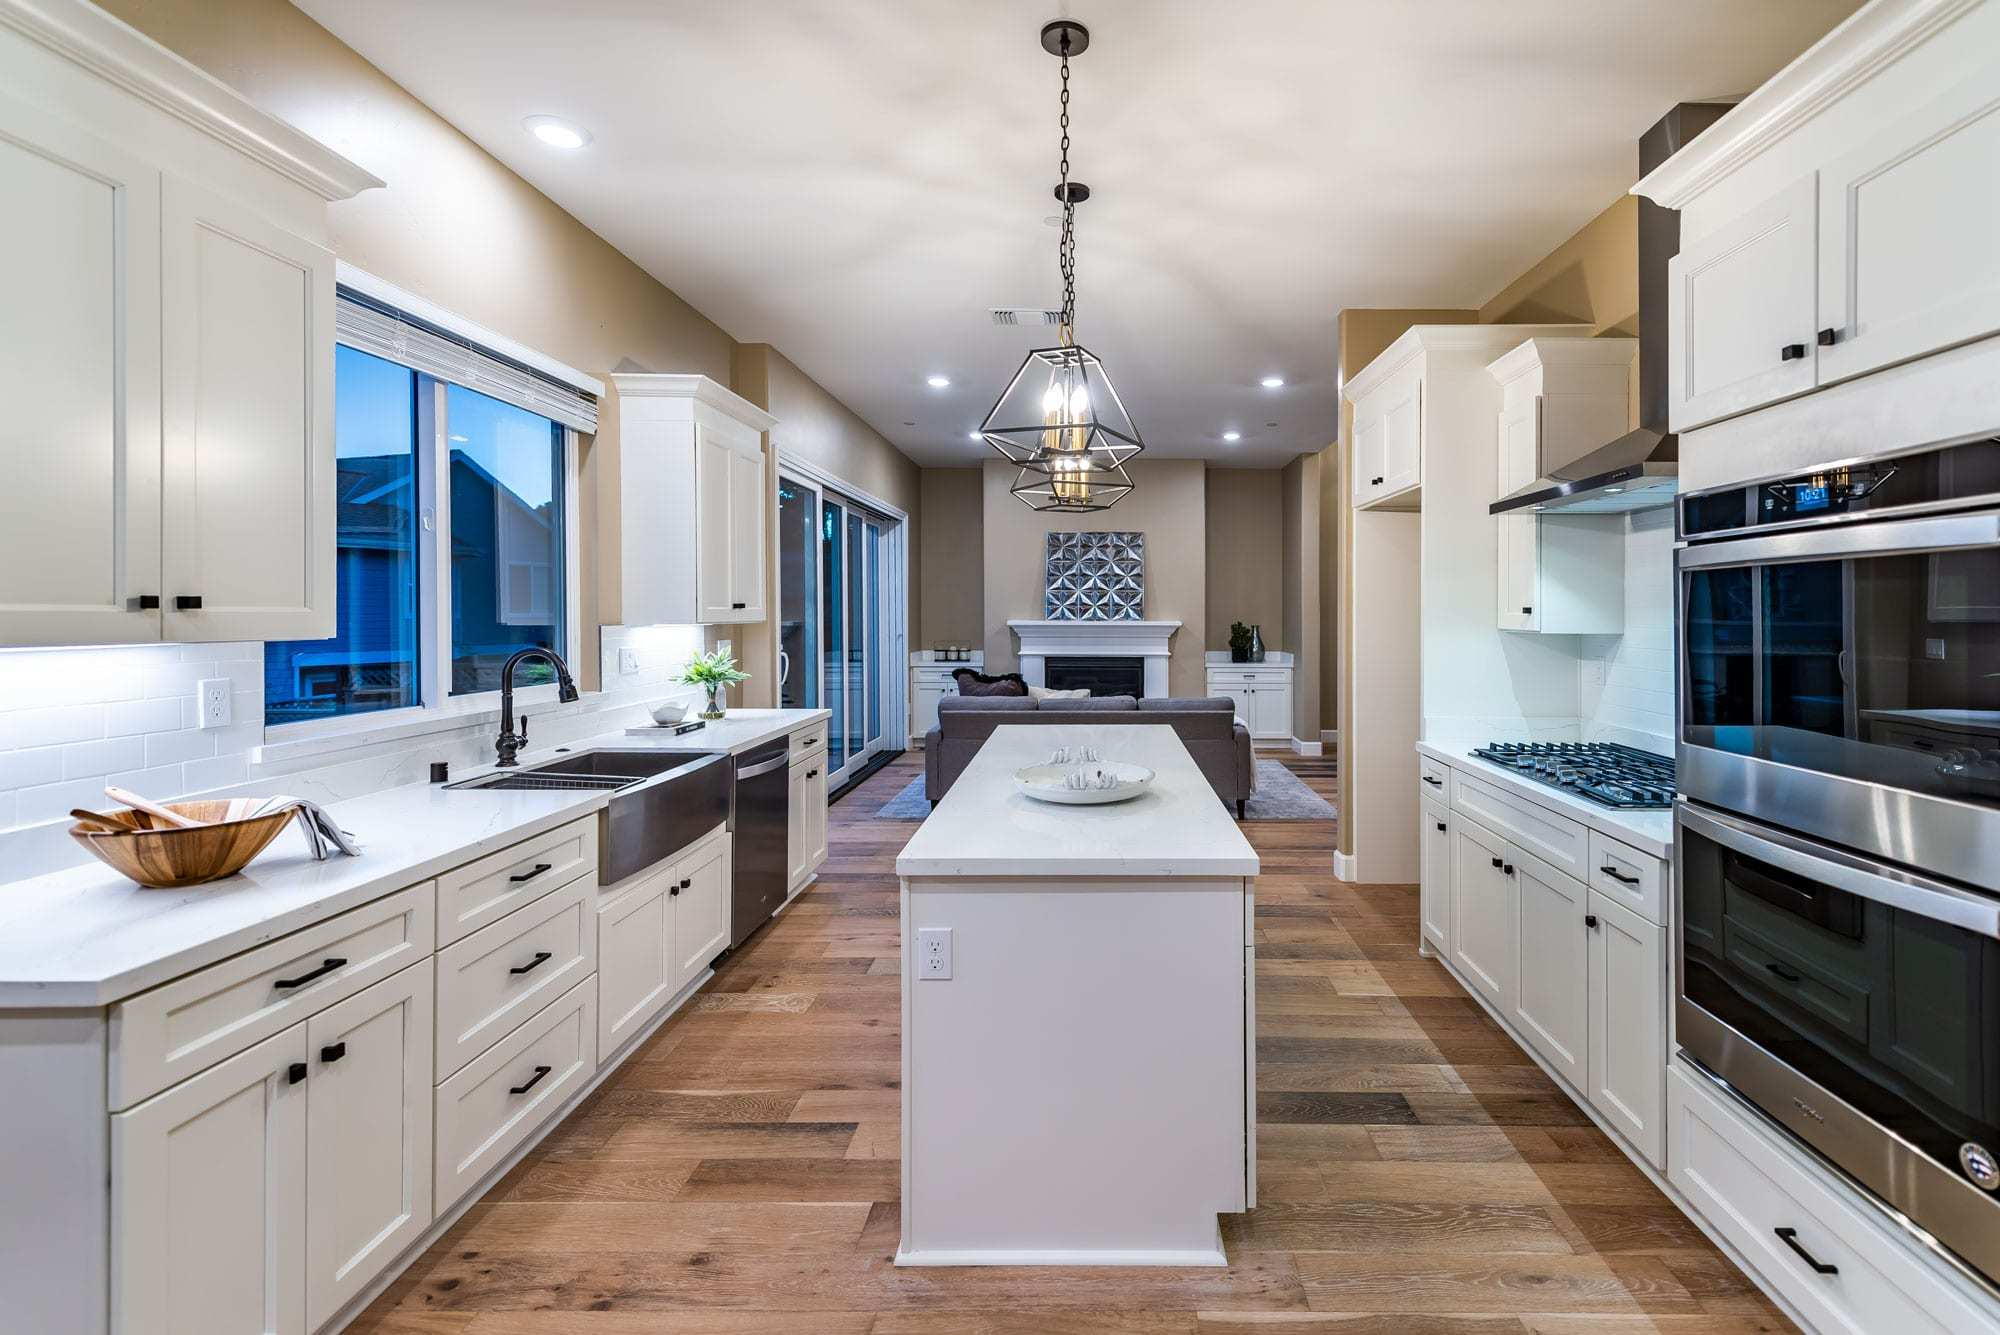 Kitchen featured in the 3608 Fir Ridge Drive By Silvermark Luxury Homes in Santa Rosa, CA